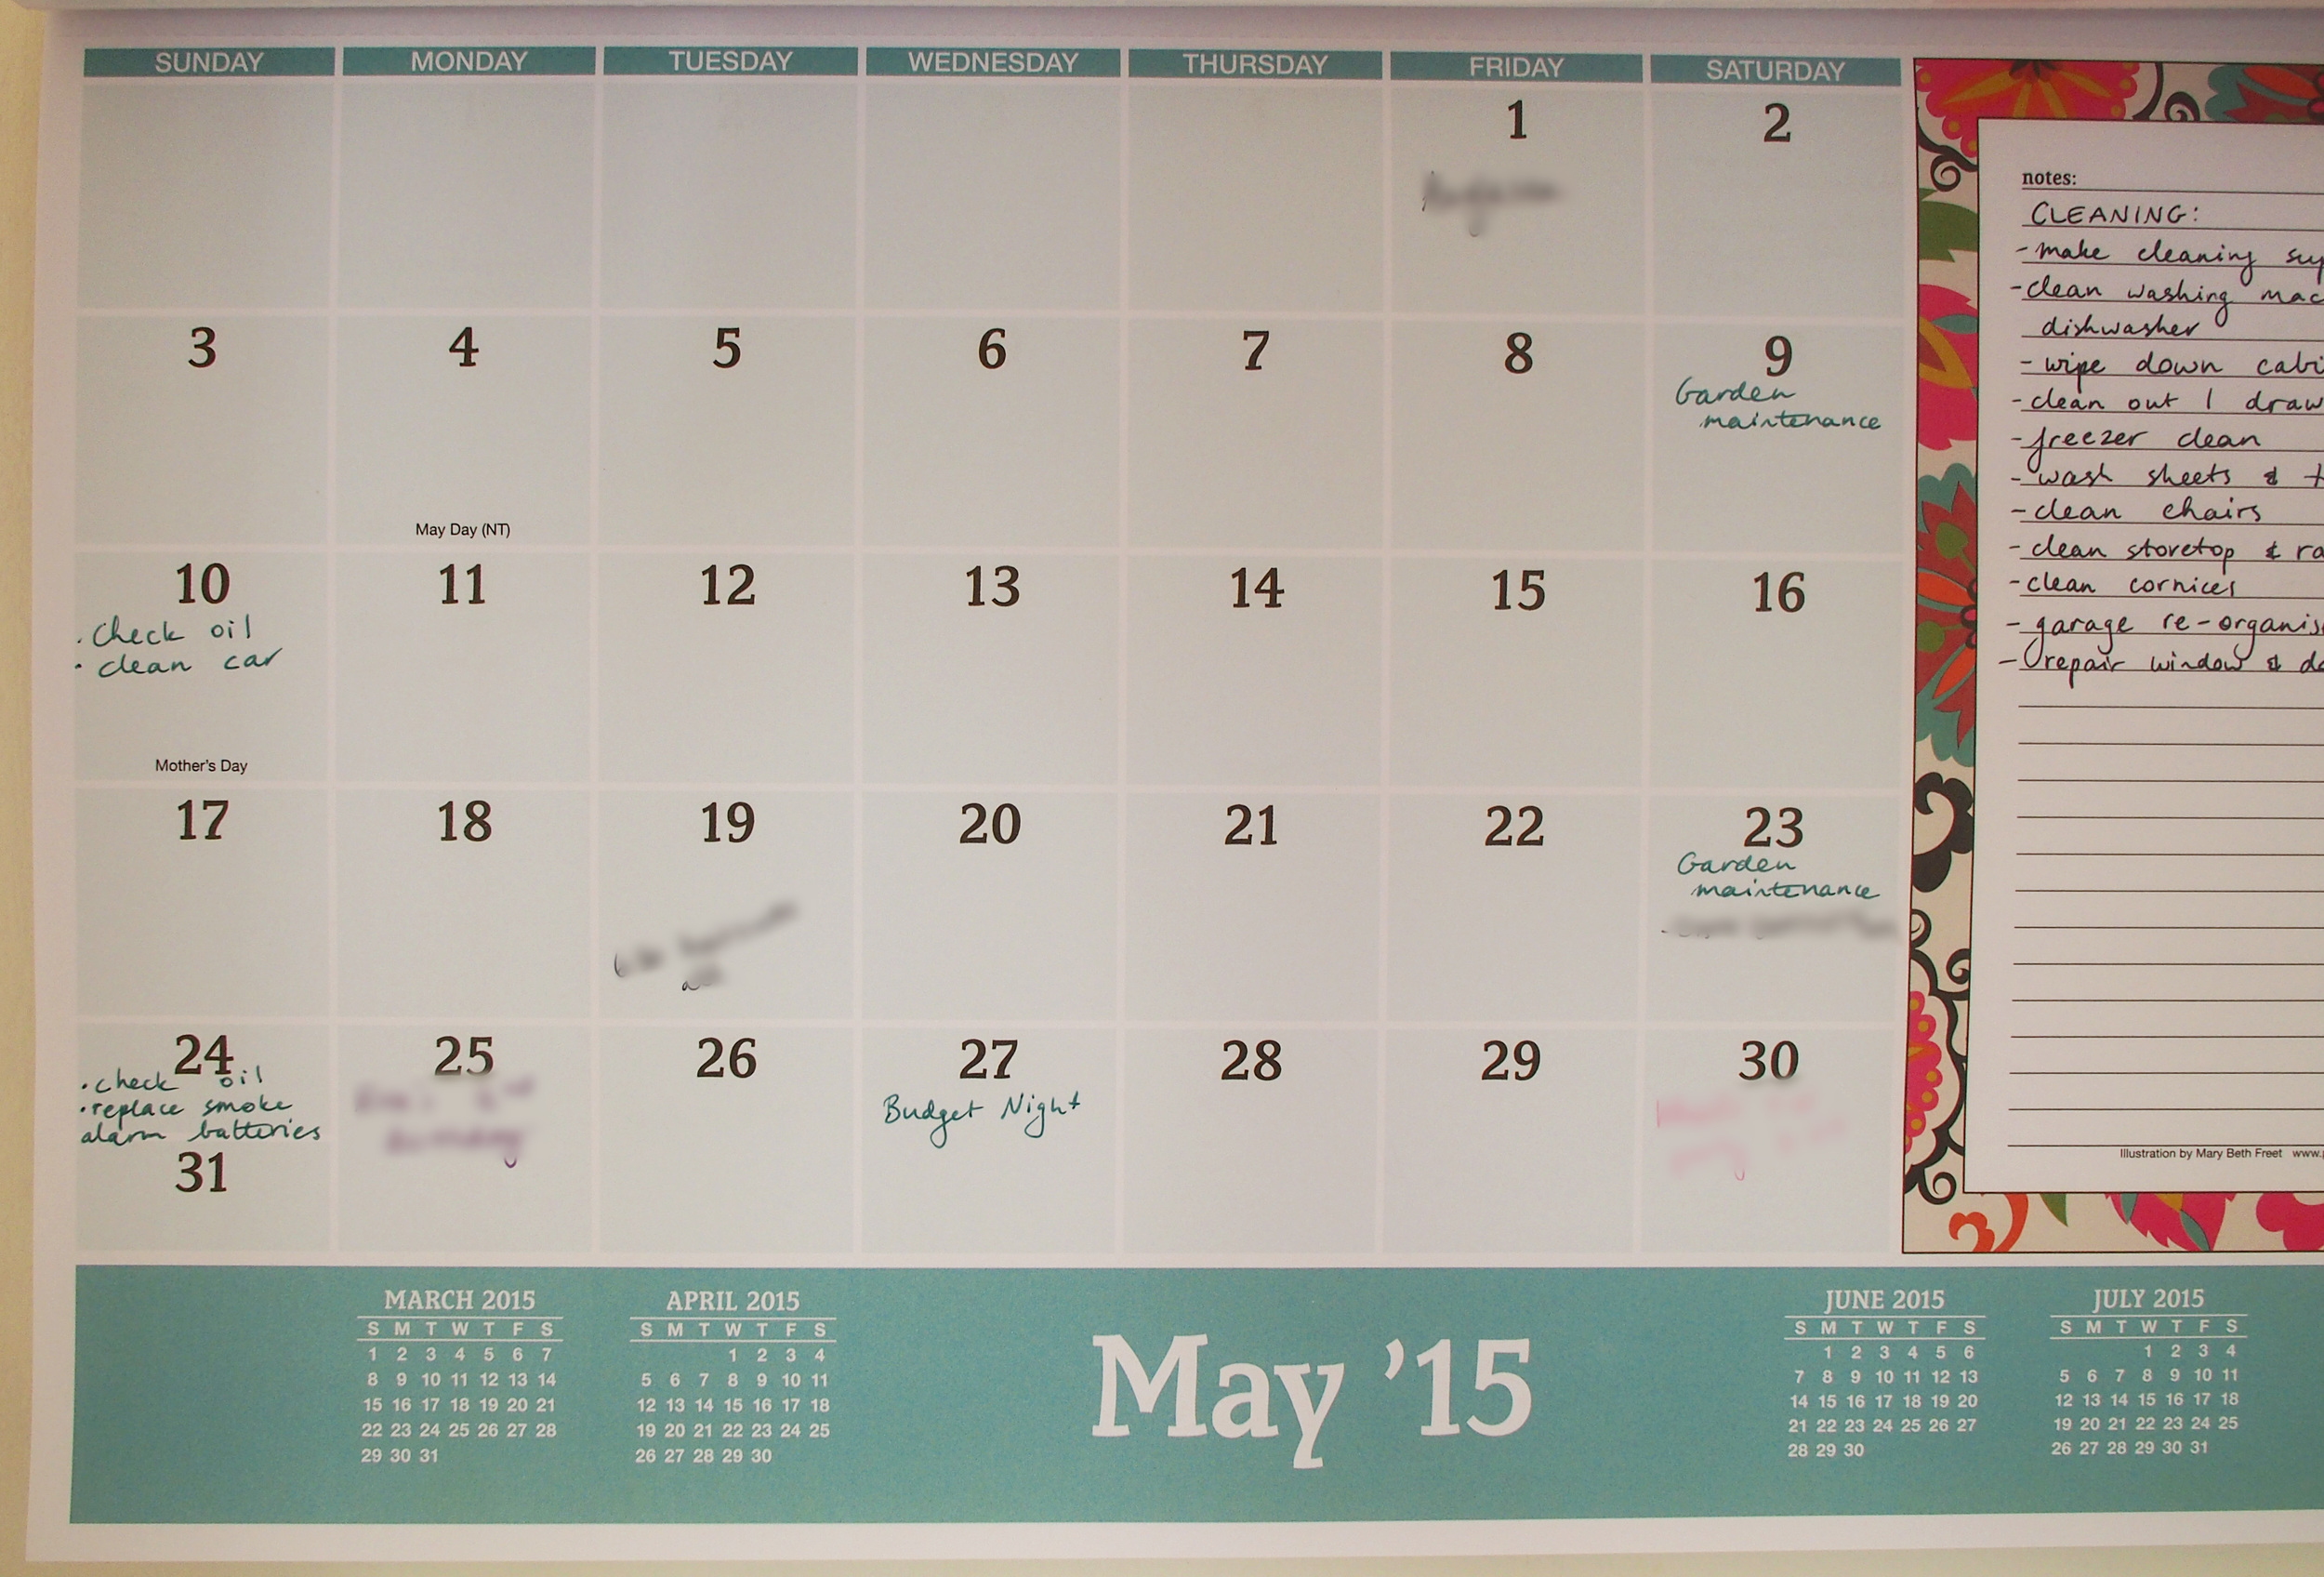 using a calendar to track household cleaning